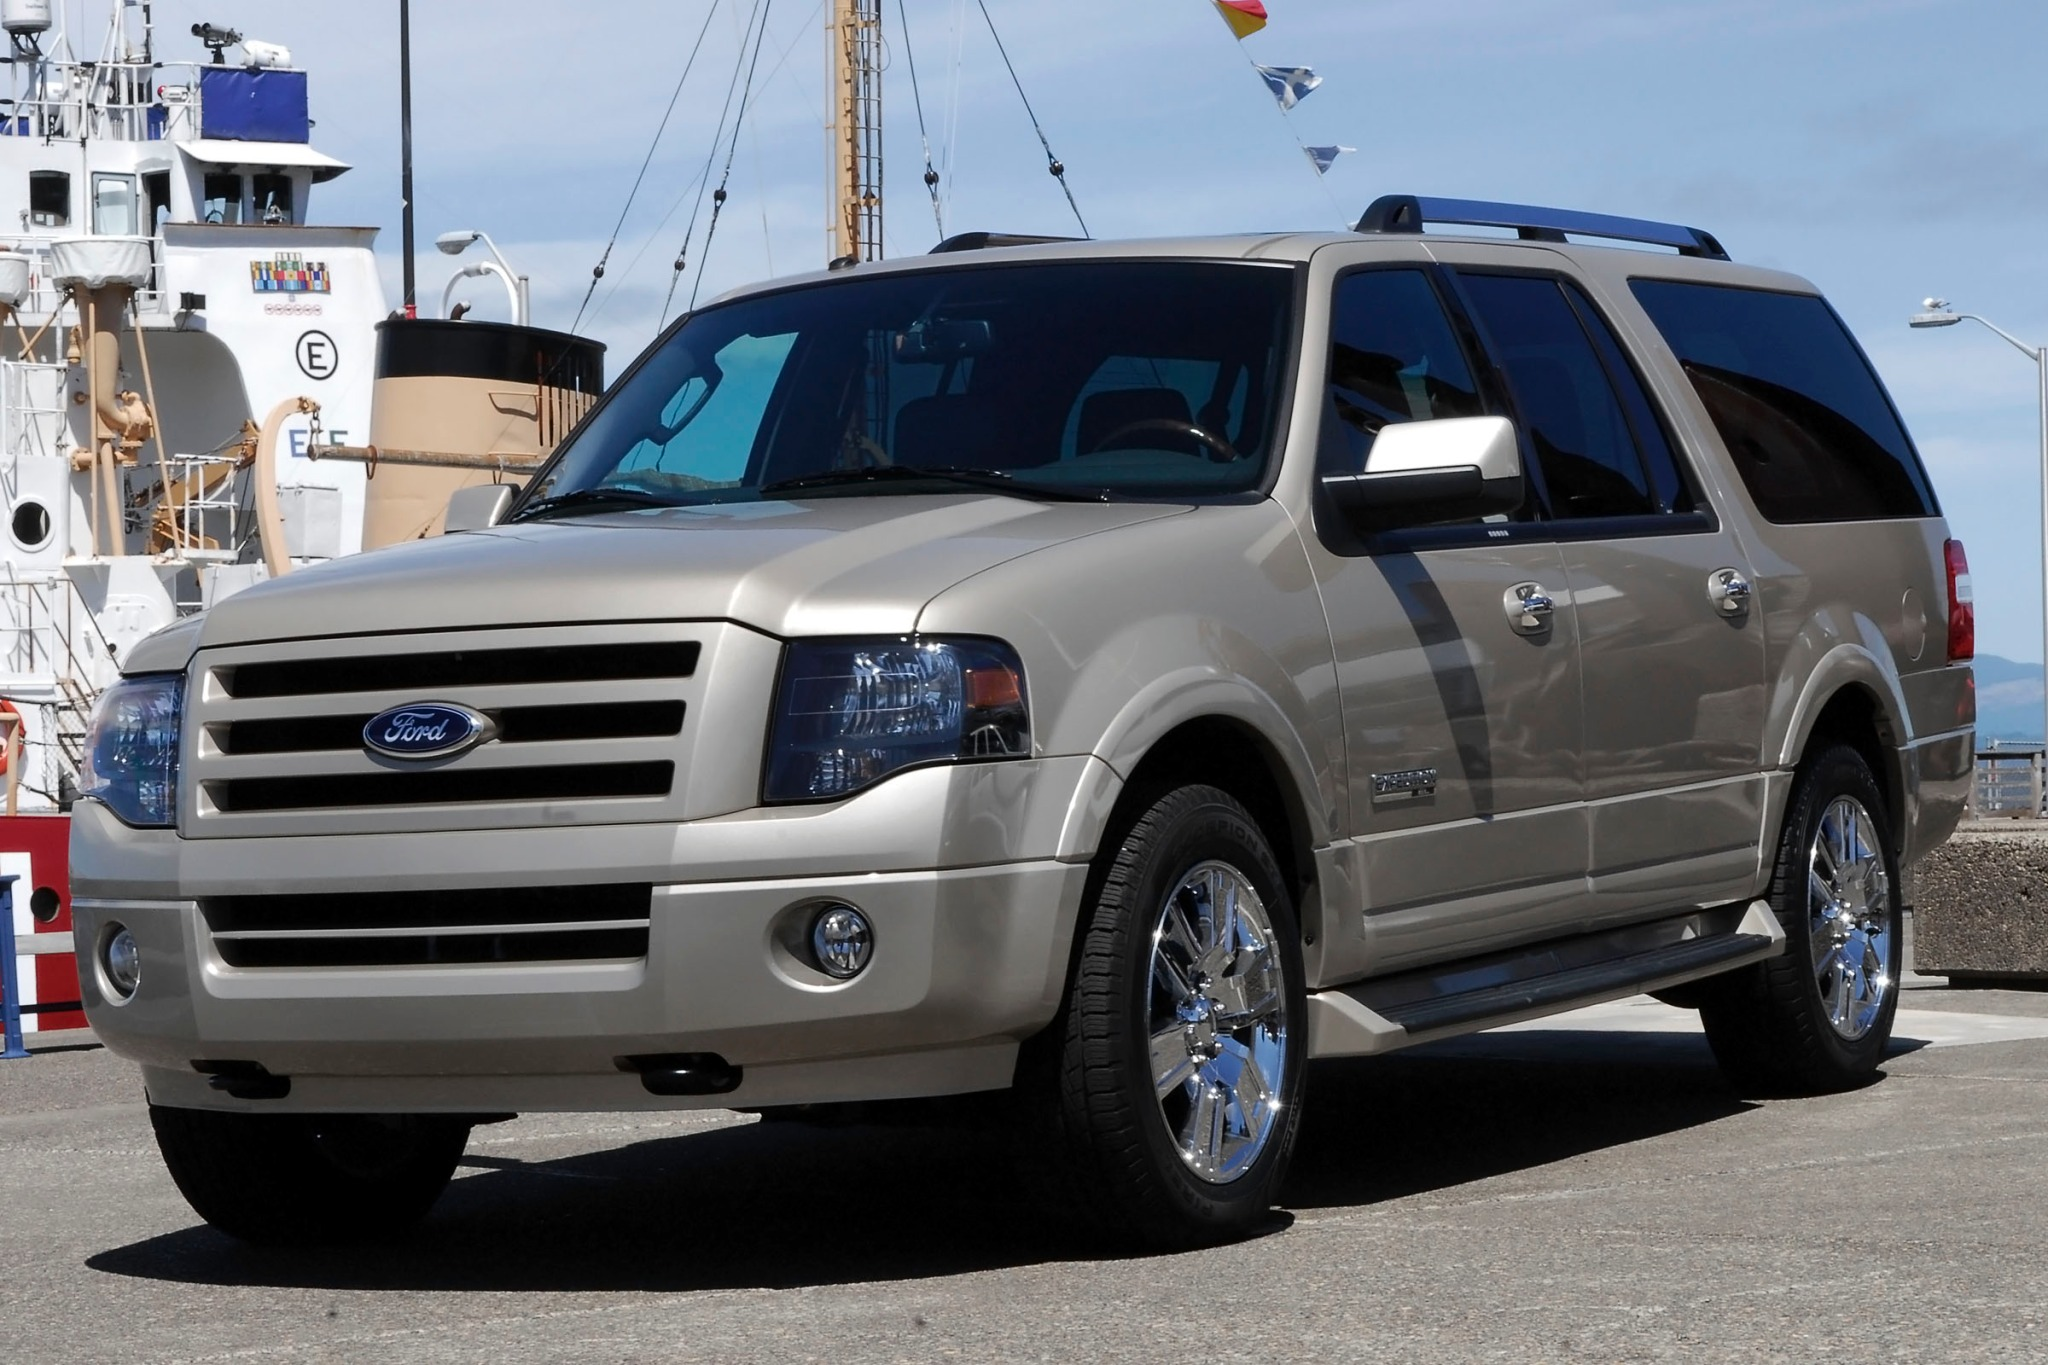 2013 Ford Expedition XLT  exterior #8